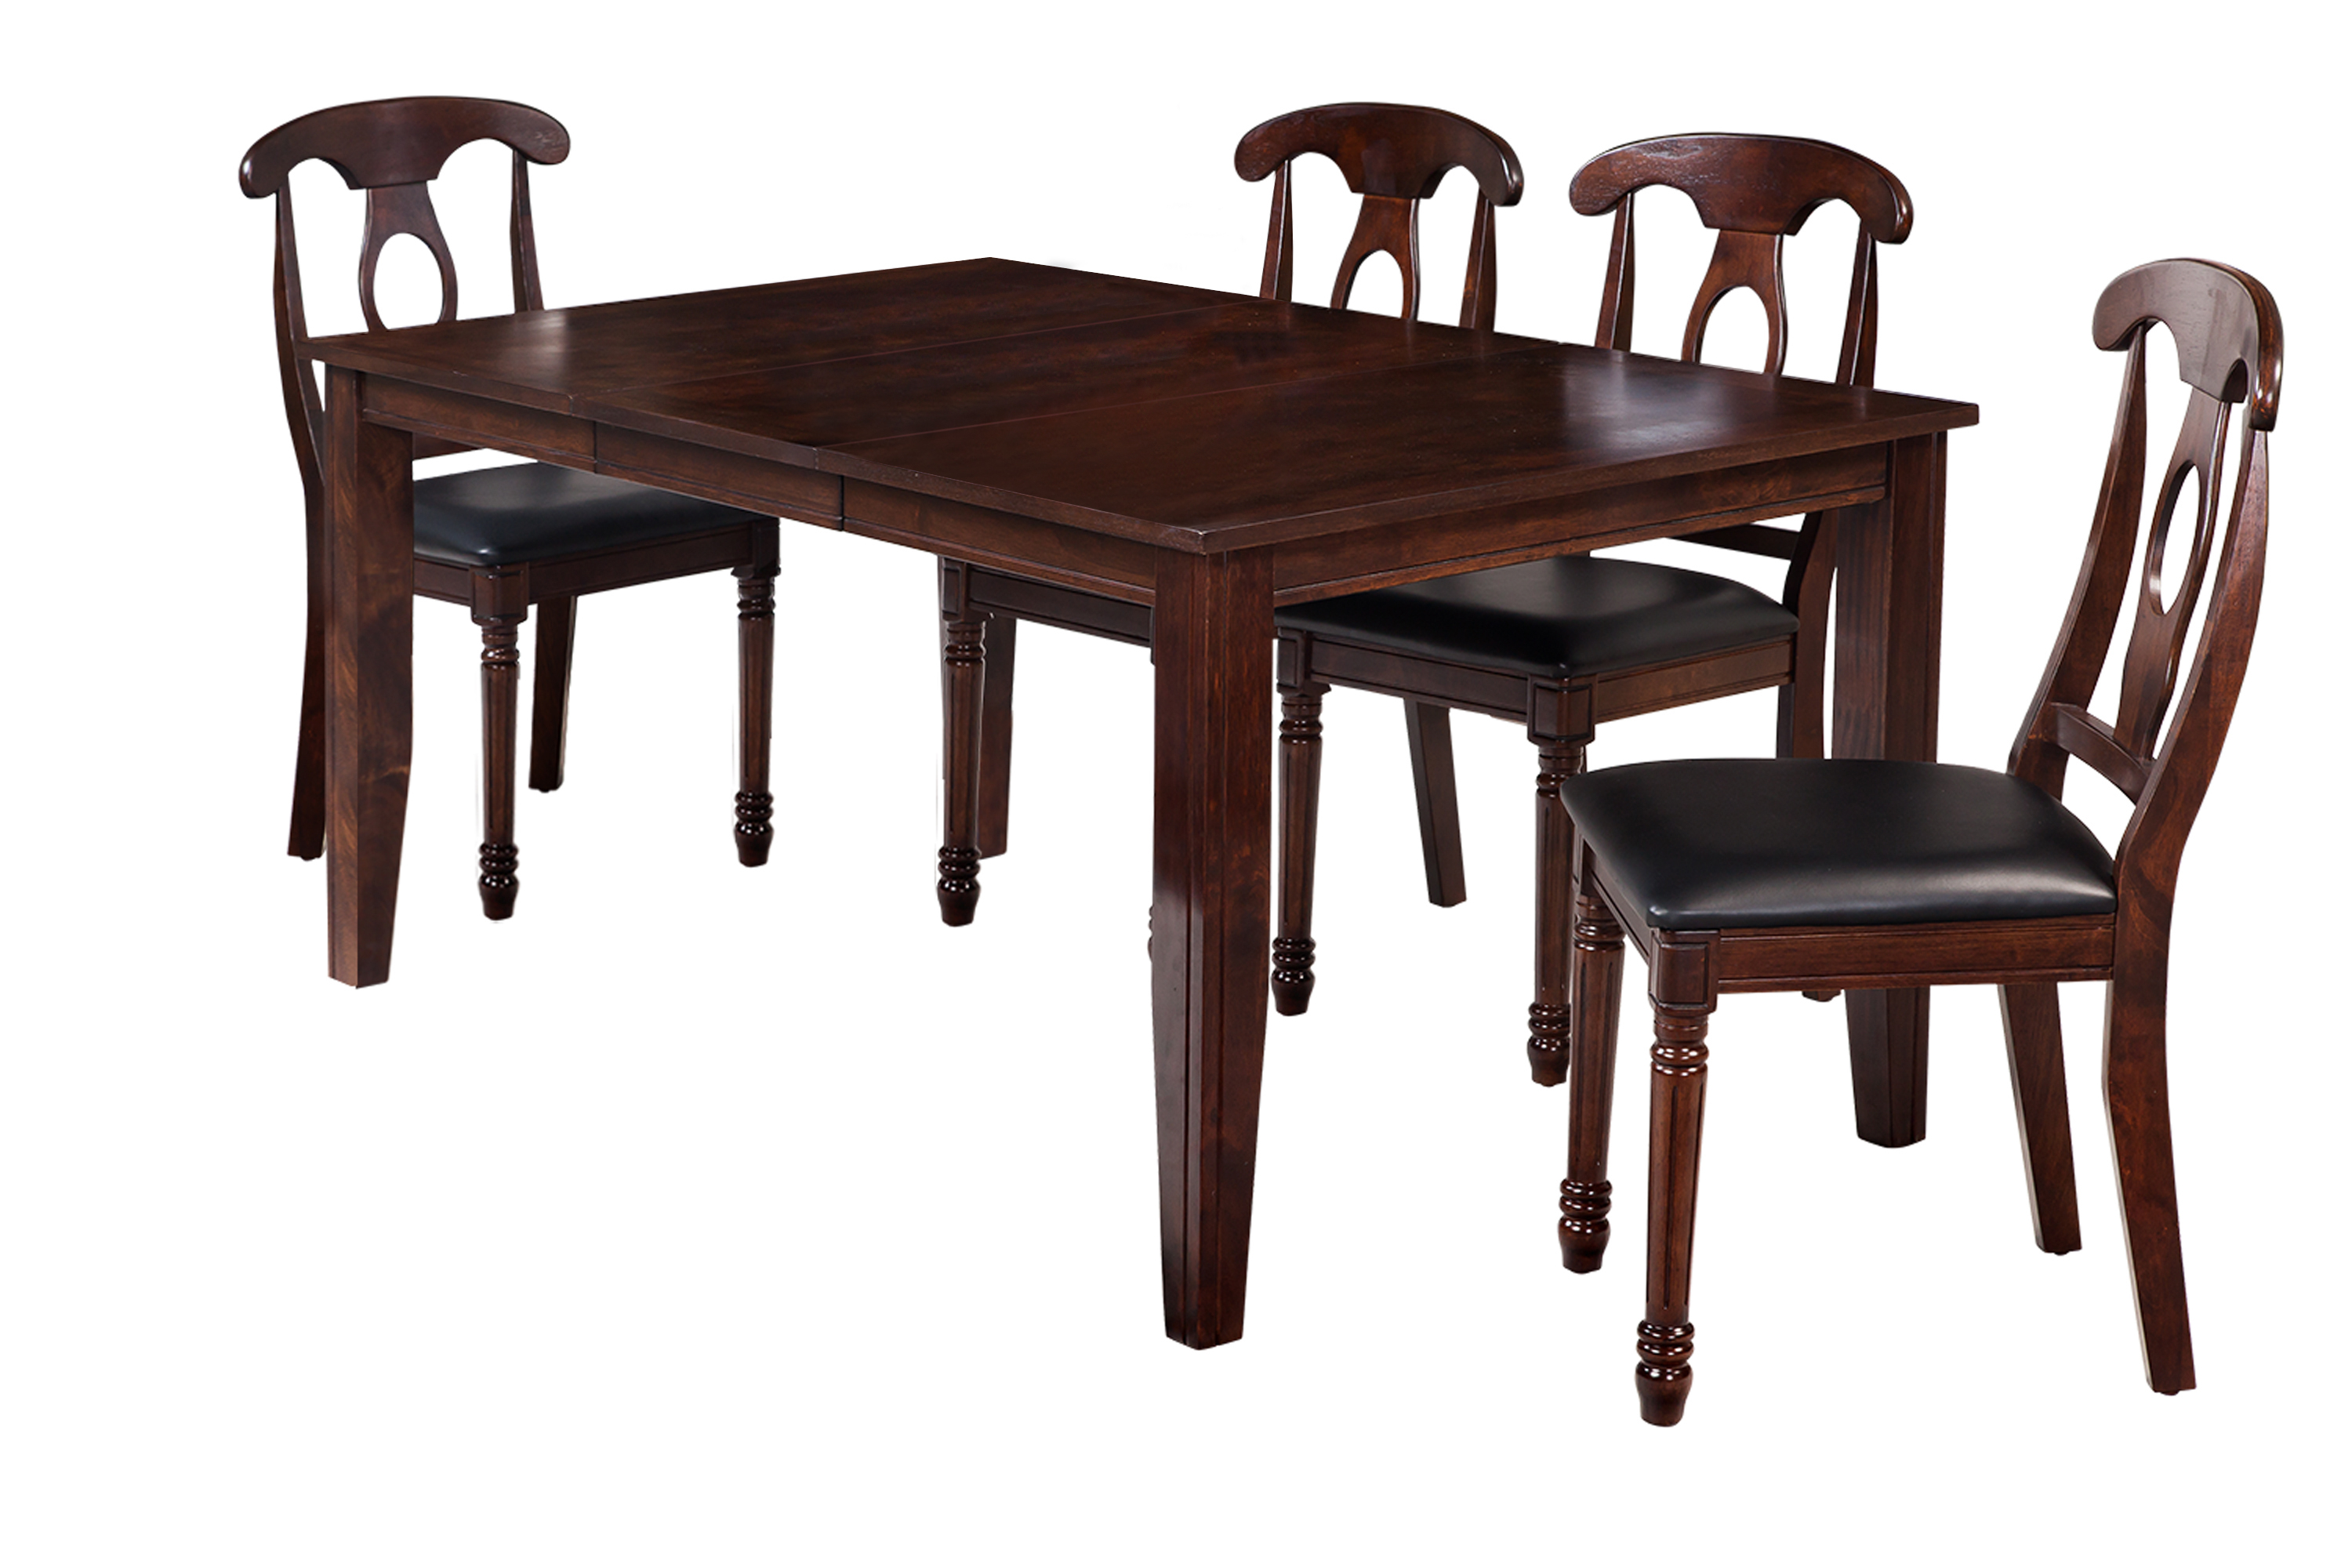 Ttp Furnish Regarding Most Recently Released Adan 5 Piece Solid Wood Dining Sets (Set Of 5) (#15 of 20)